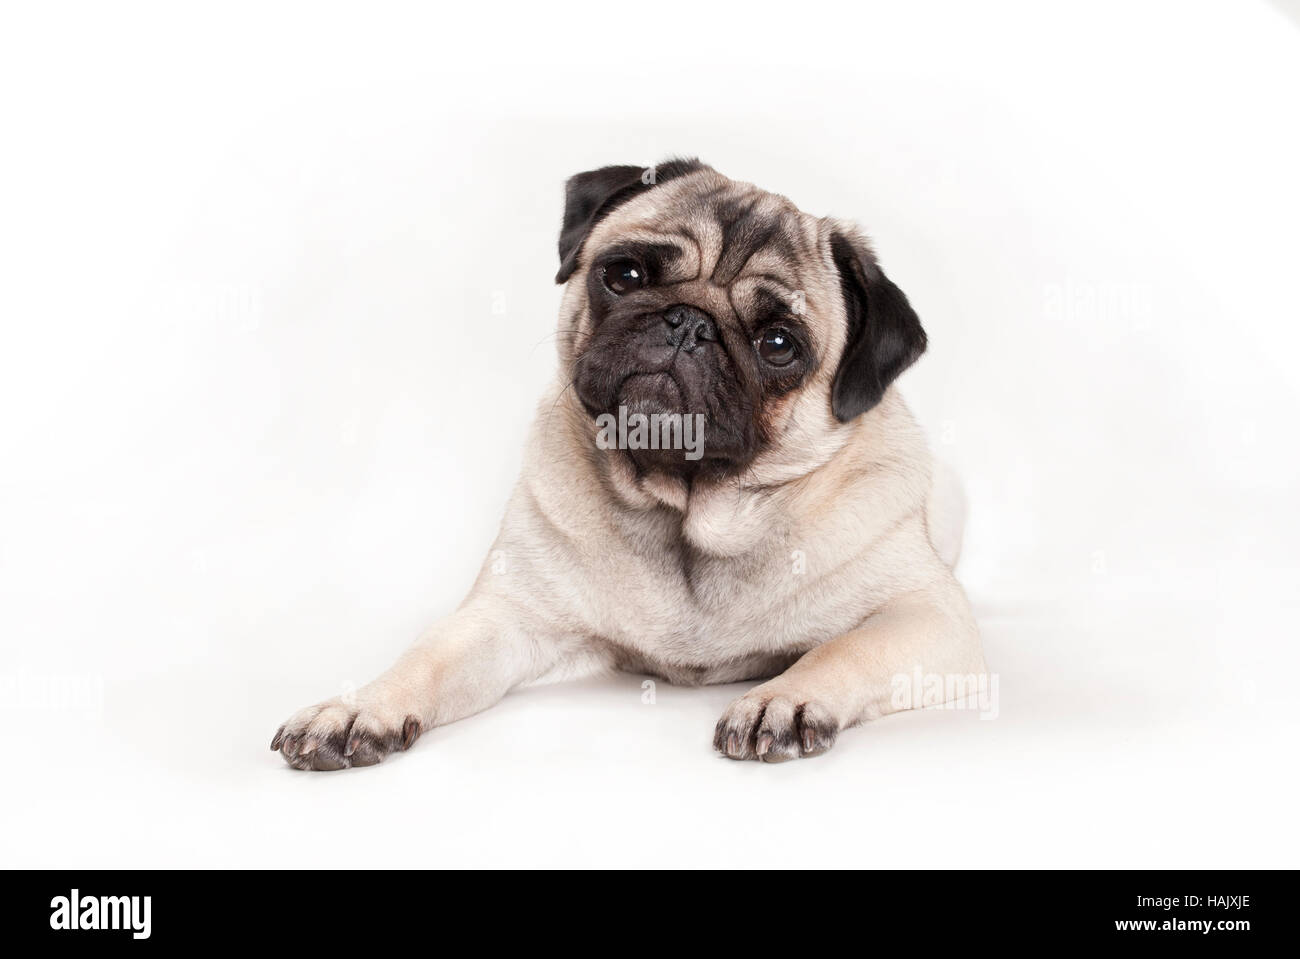 sweet pug puppy dog lying down on floor, looking cheeky - Stock Image